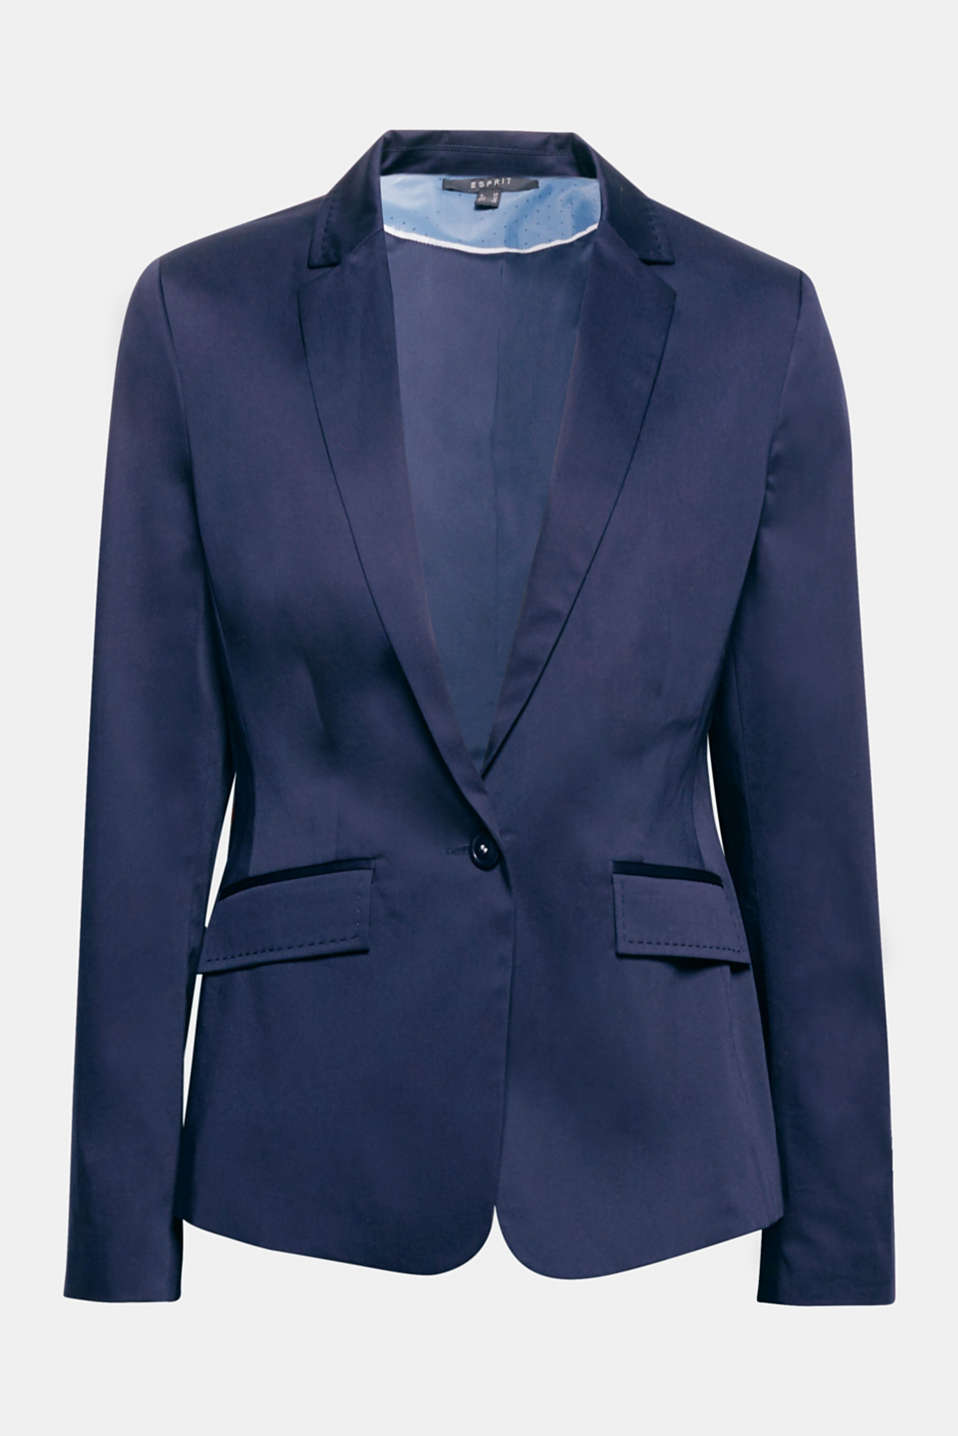 The subtle sheen and tonal embroidery on the lapel and pockets give this fitted stretch blazer its modern chic look!